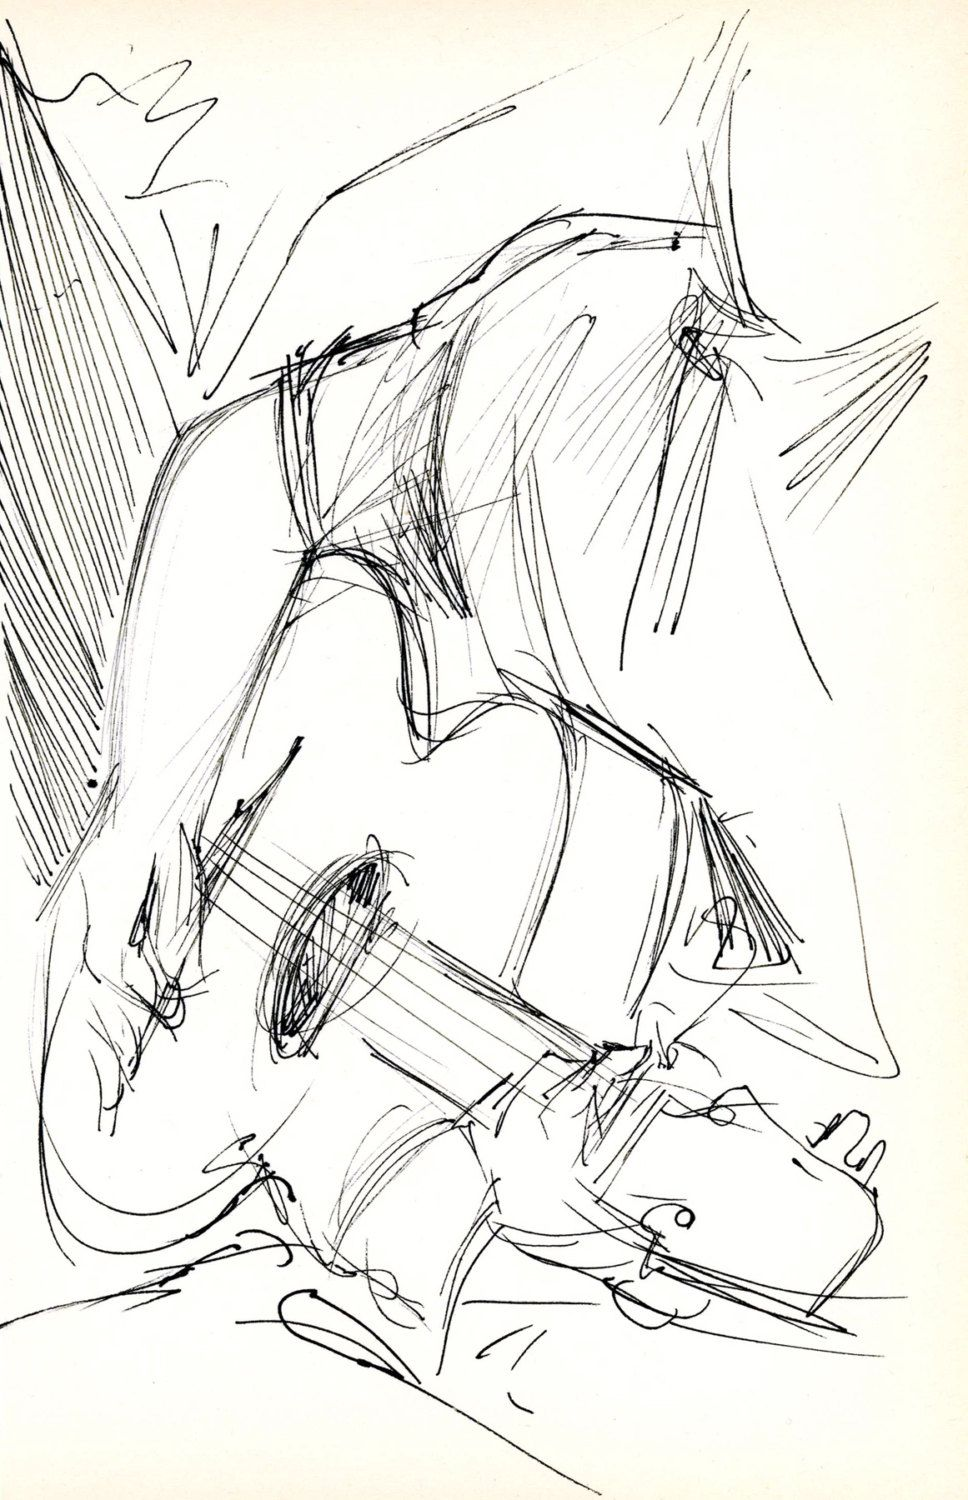 """Guitarist - Original Pen & Ink Sketch - Archivally Matted and Mounted for Standard 8x10"""" Frame by FallenLeavesFineArt on Etsy"""